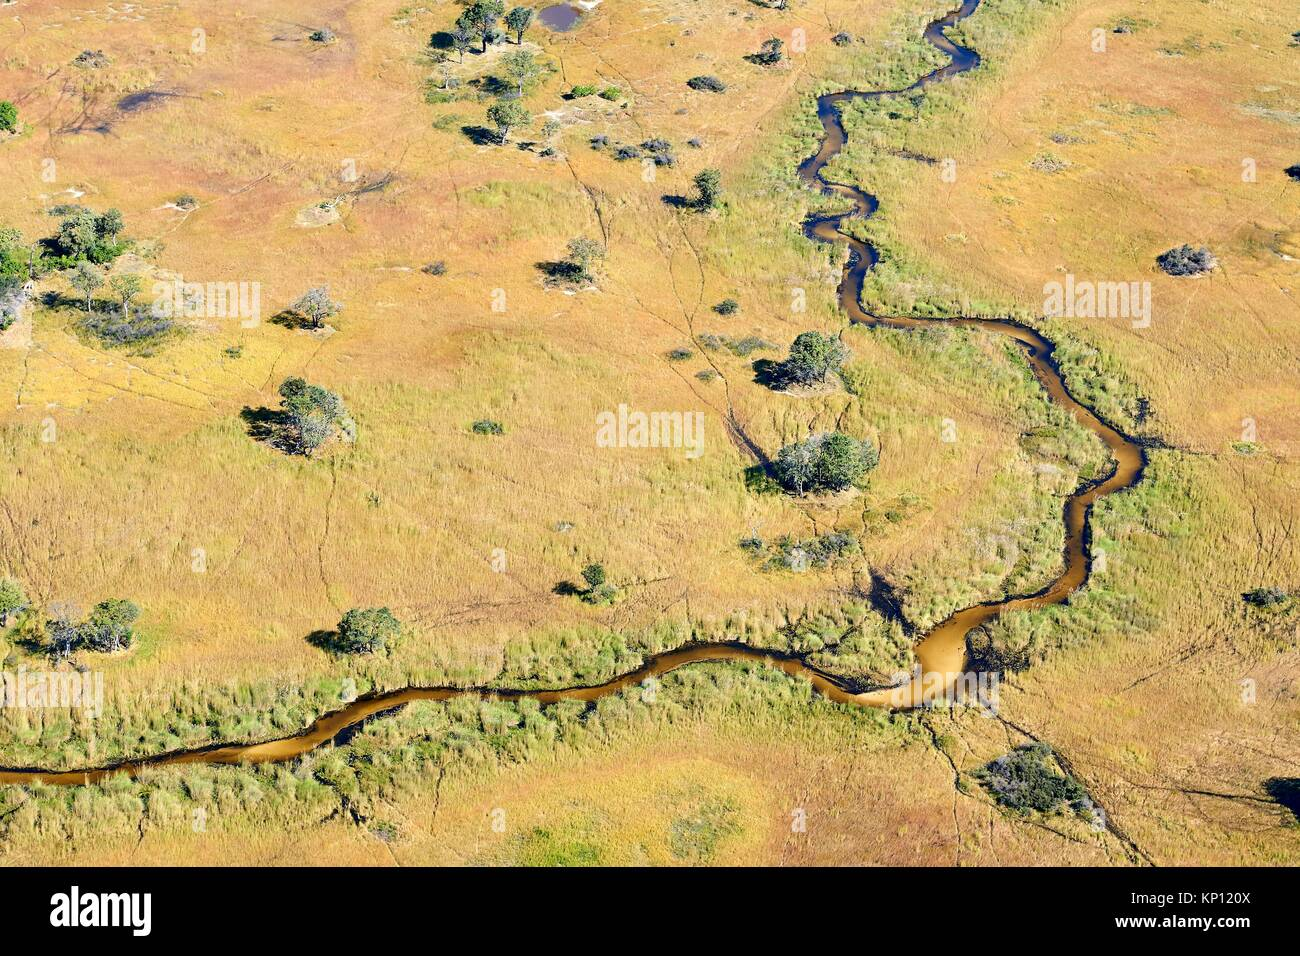 Aerial view of the Okavango delta, a channel with a sandy bed meanders through the swamp, Botswana, Africa. - Stock Image